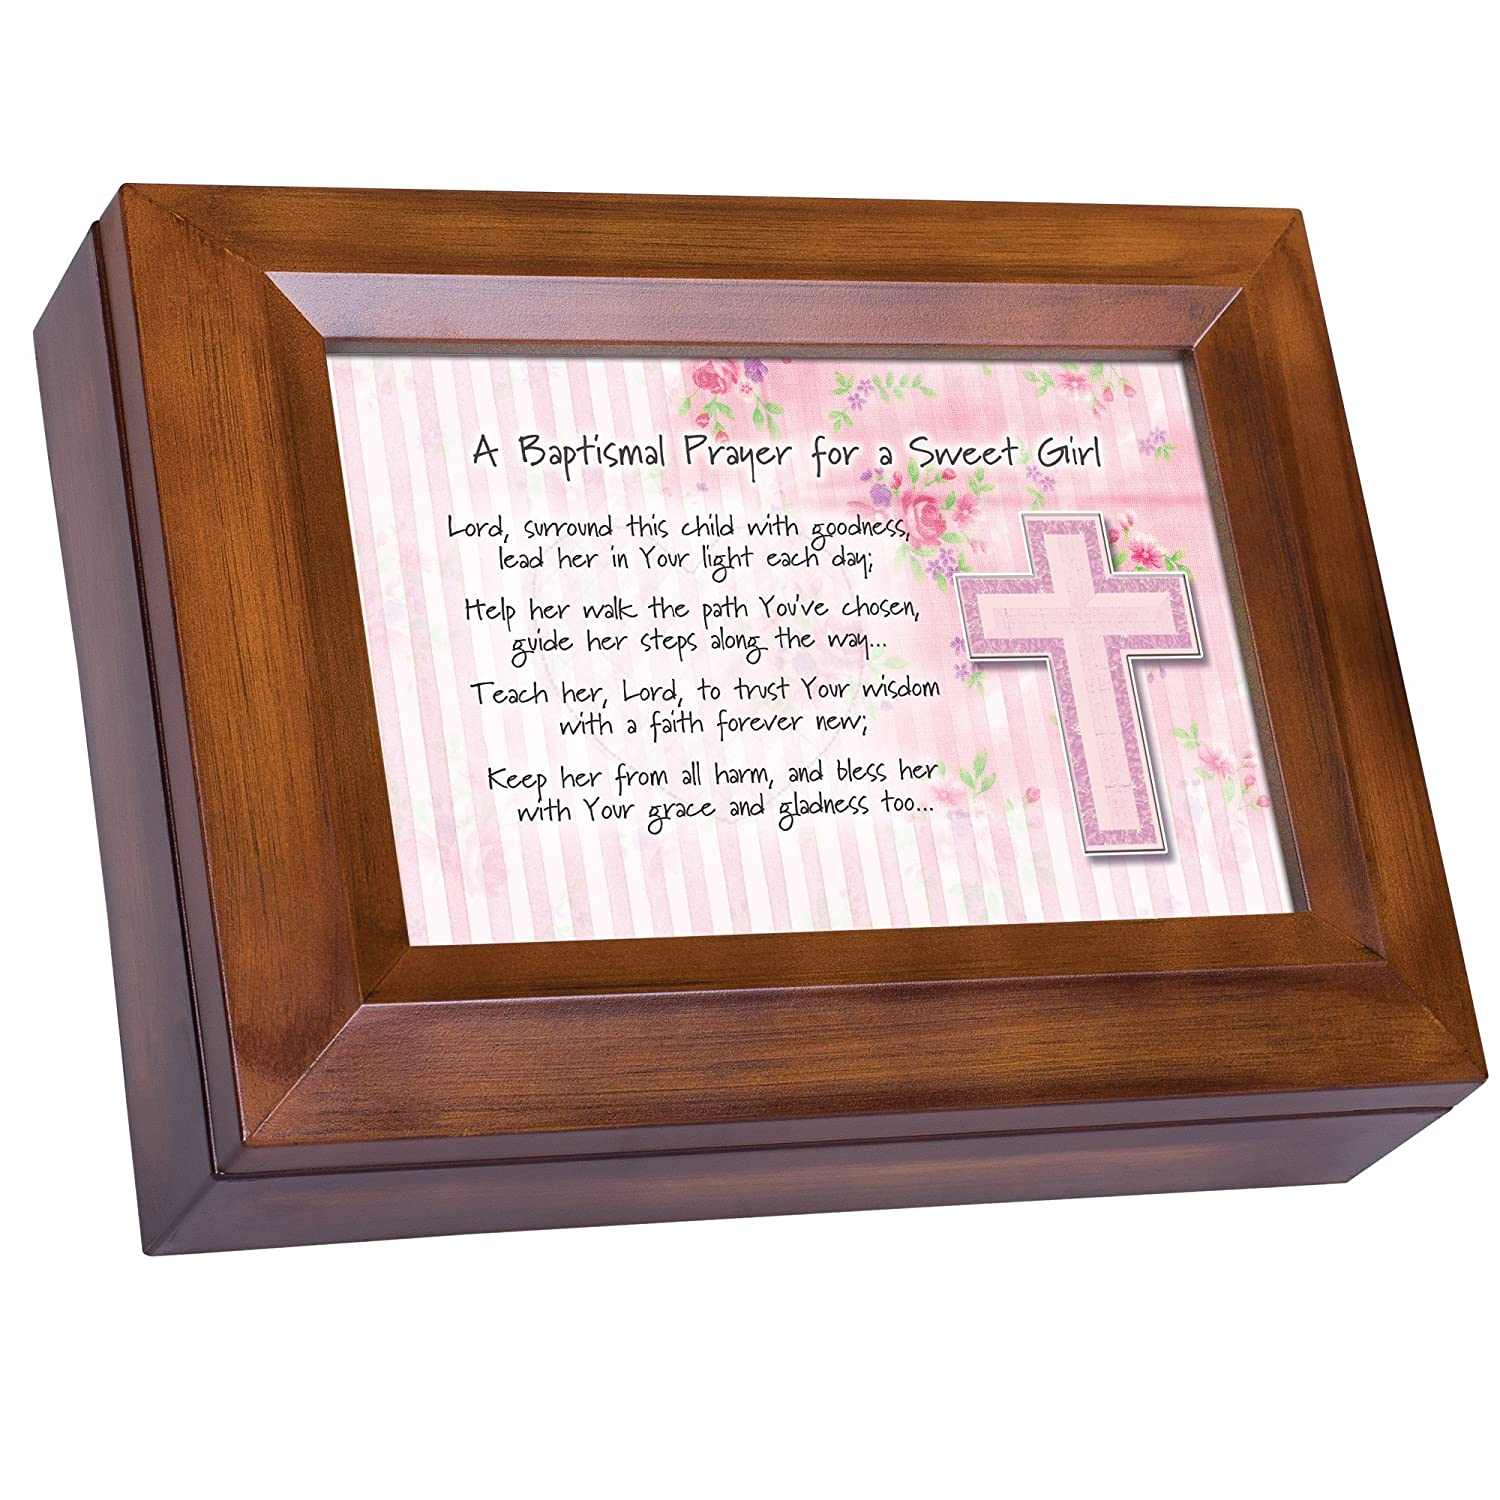 Plays Tune You Are My Sunshine Cottage Garden Baptismal Prayer for a Sweet Girl Wood Finish Jewelry Music Box